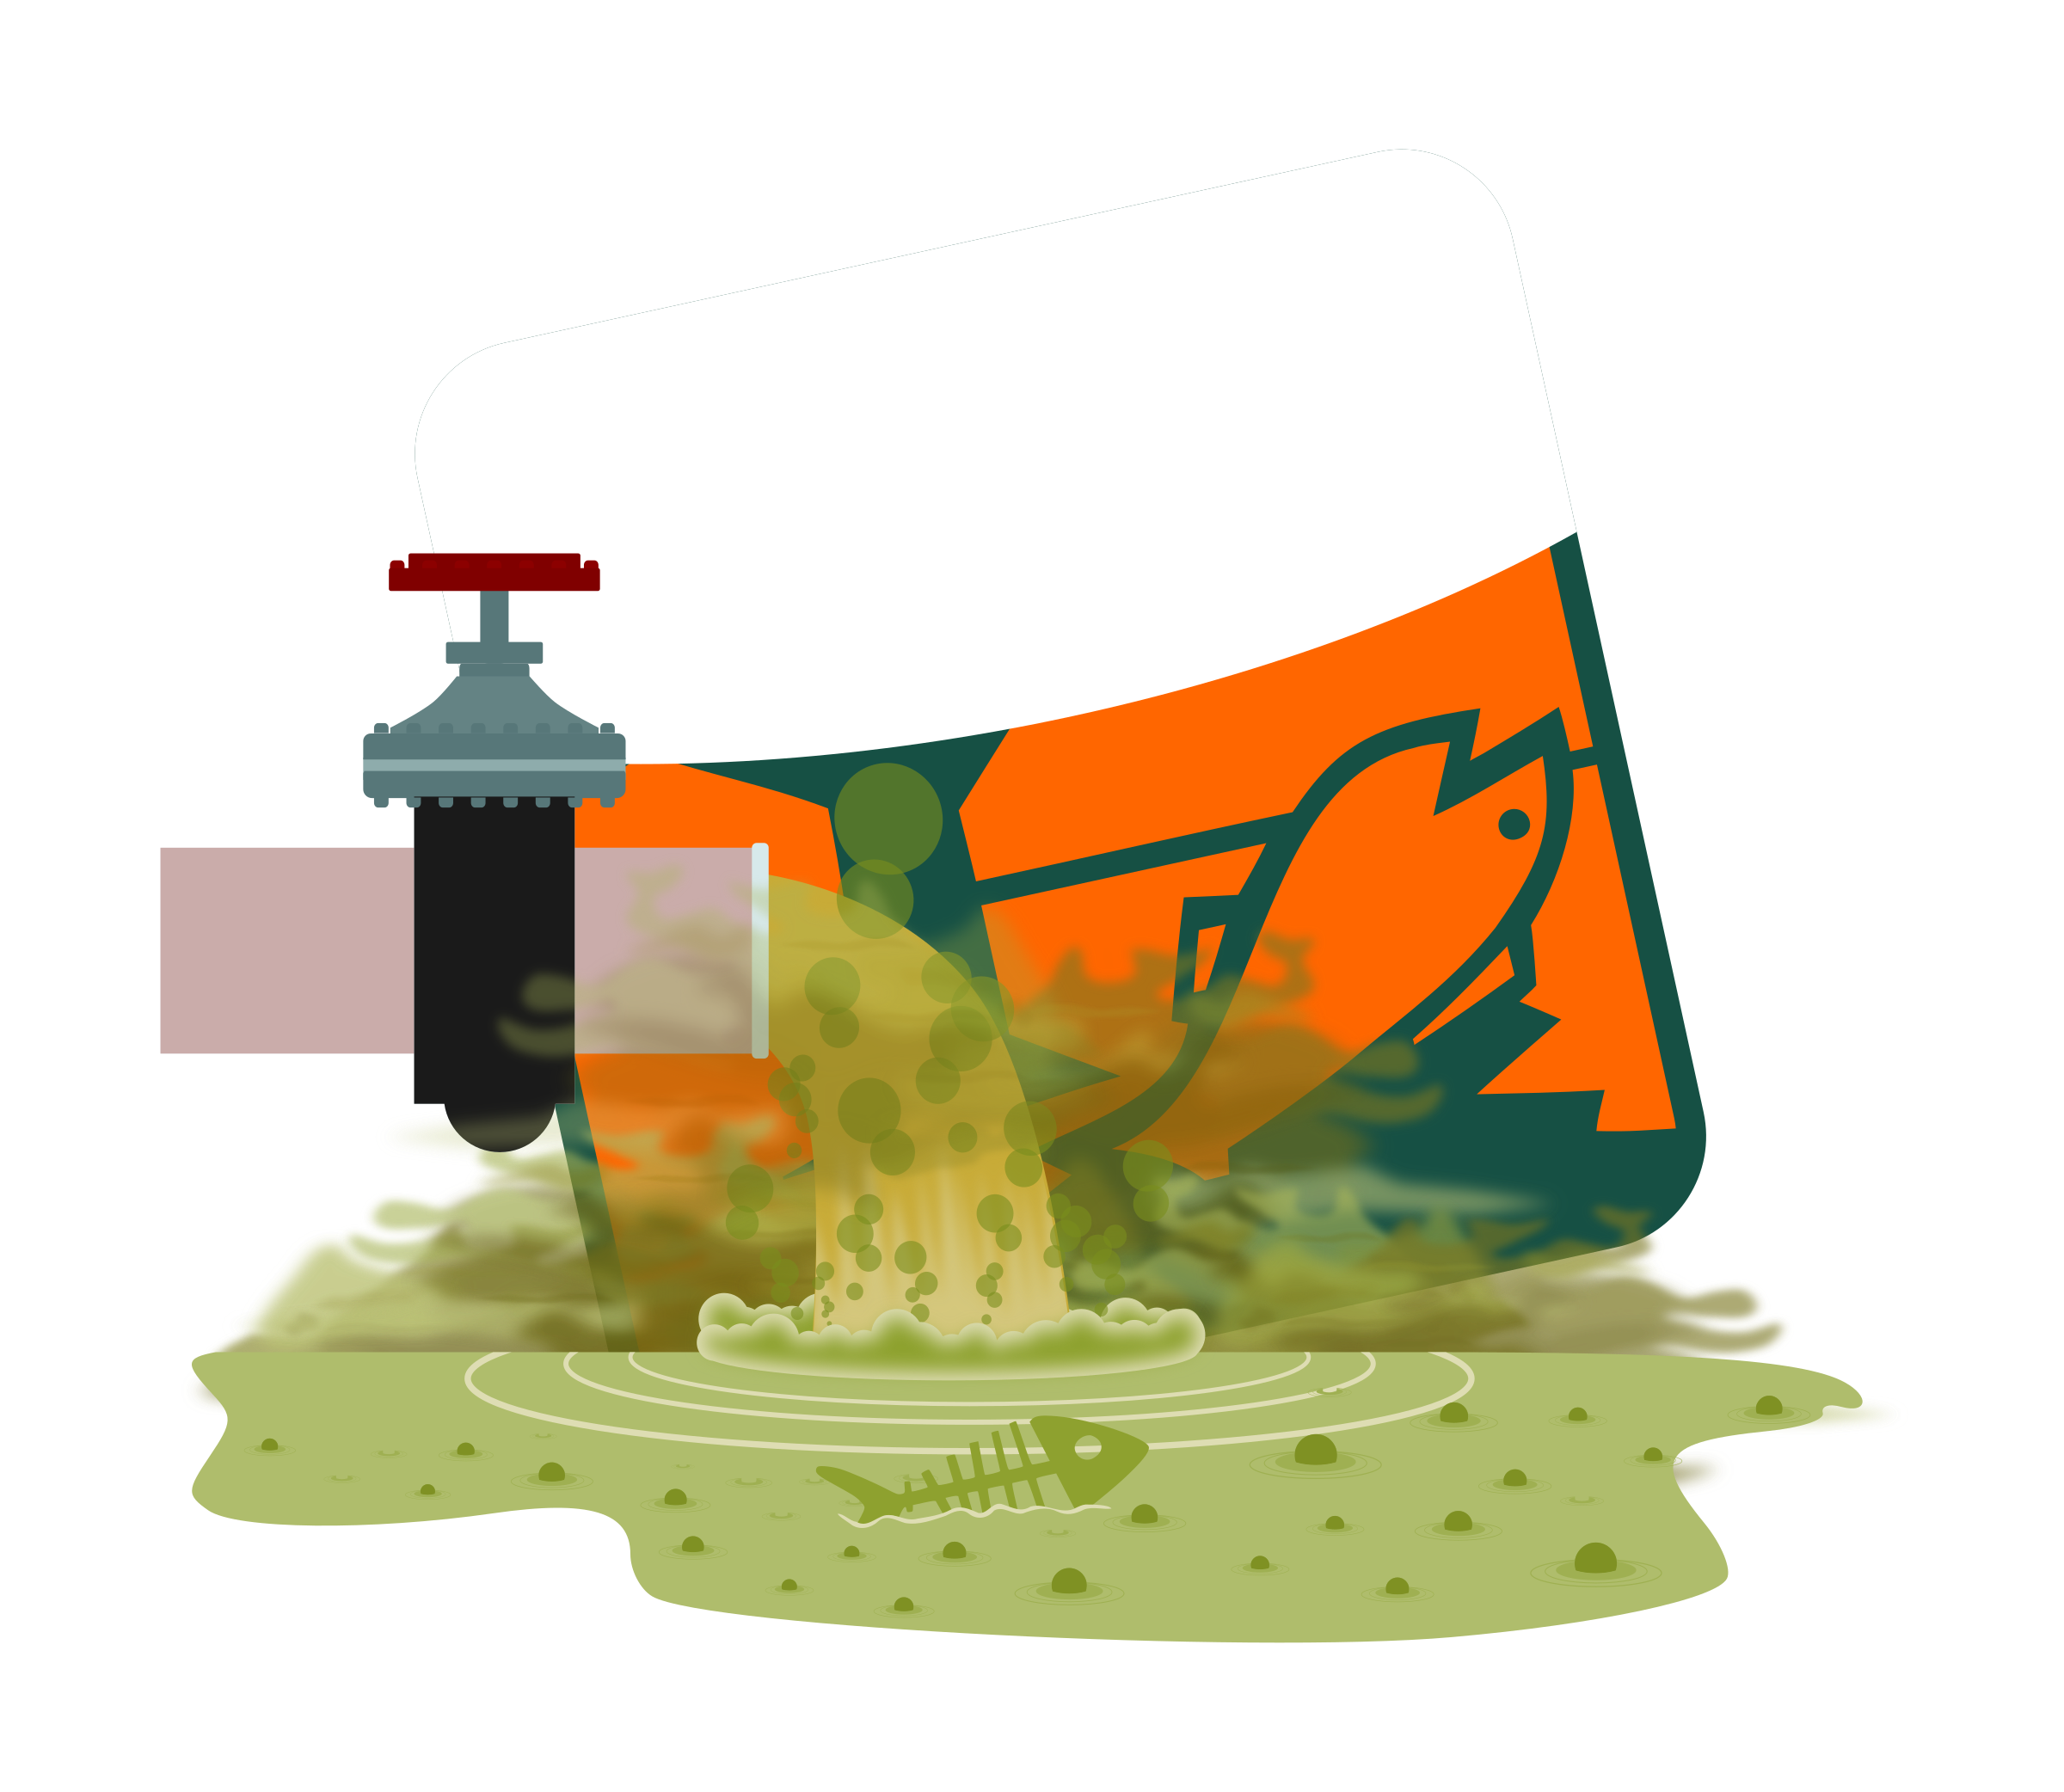 Water clipart polluted. Pollution big image png